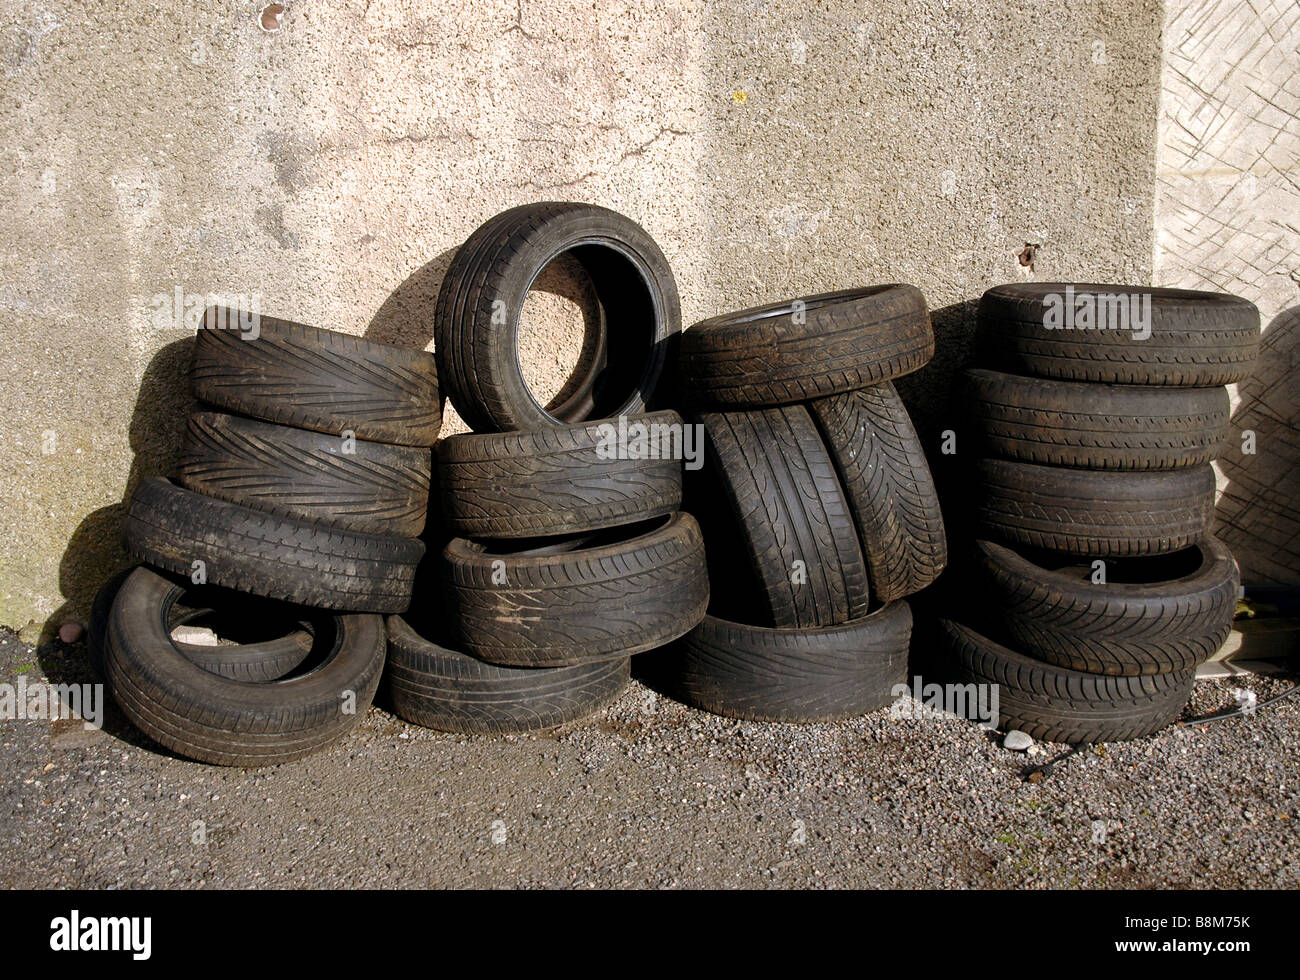 Tyres stacked up against a garage wall. - Stock Image